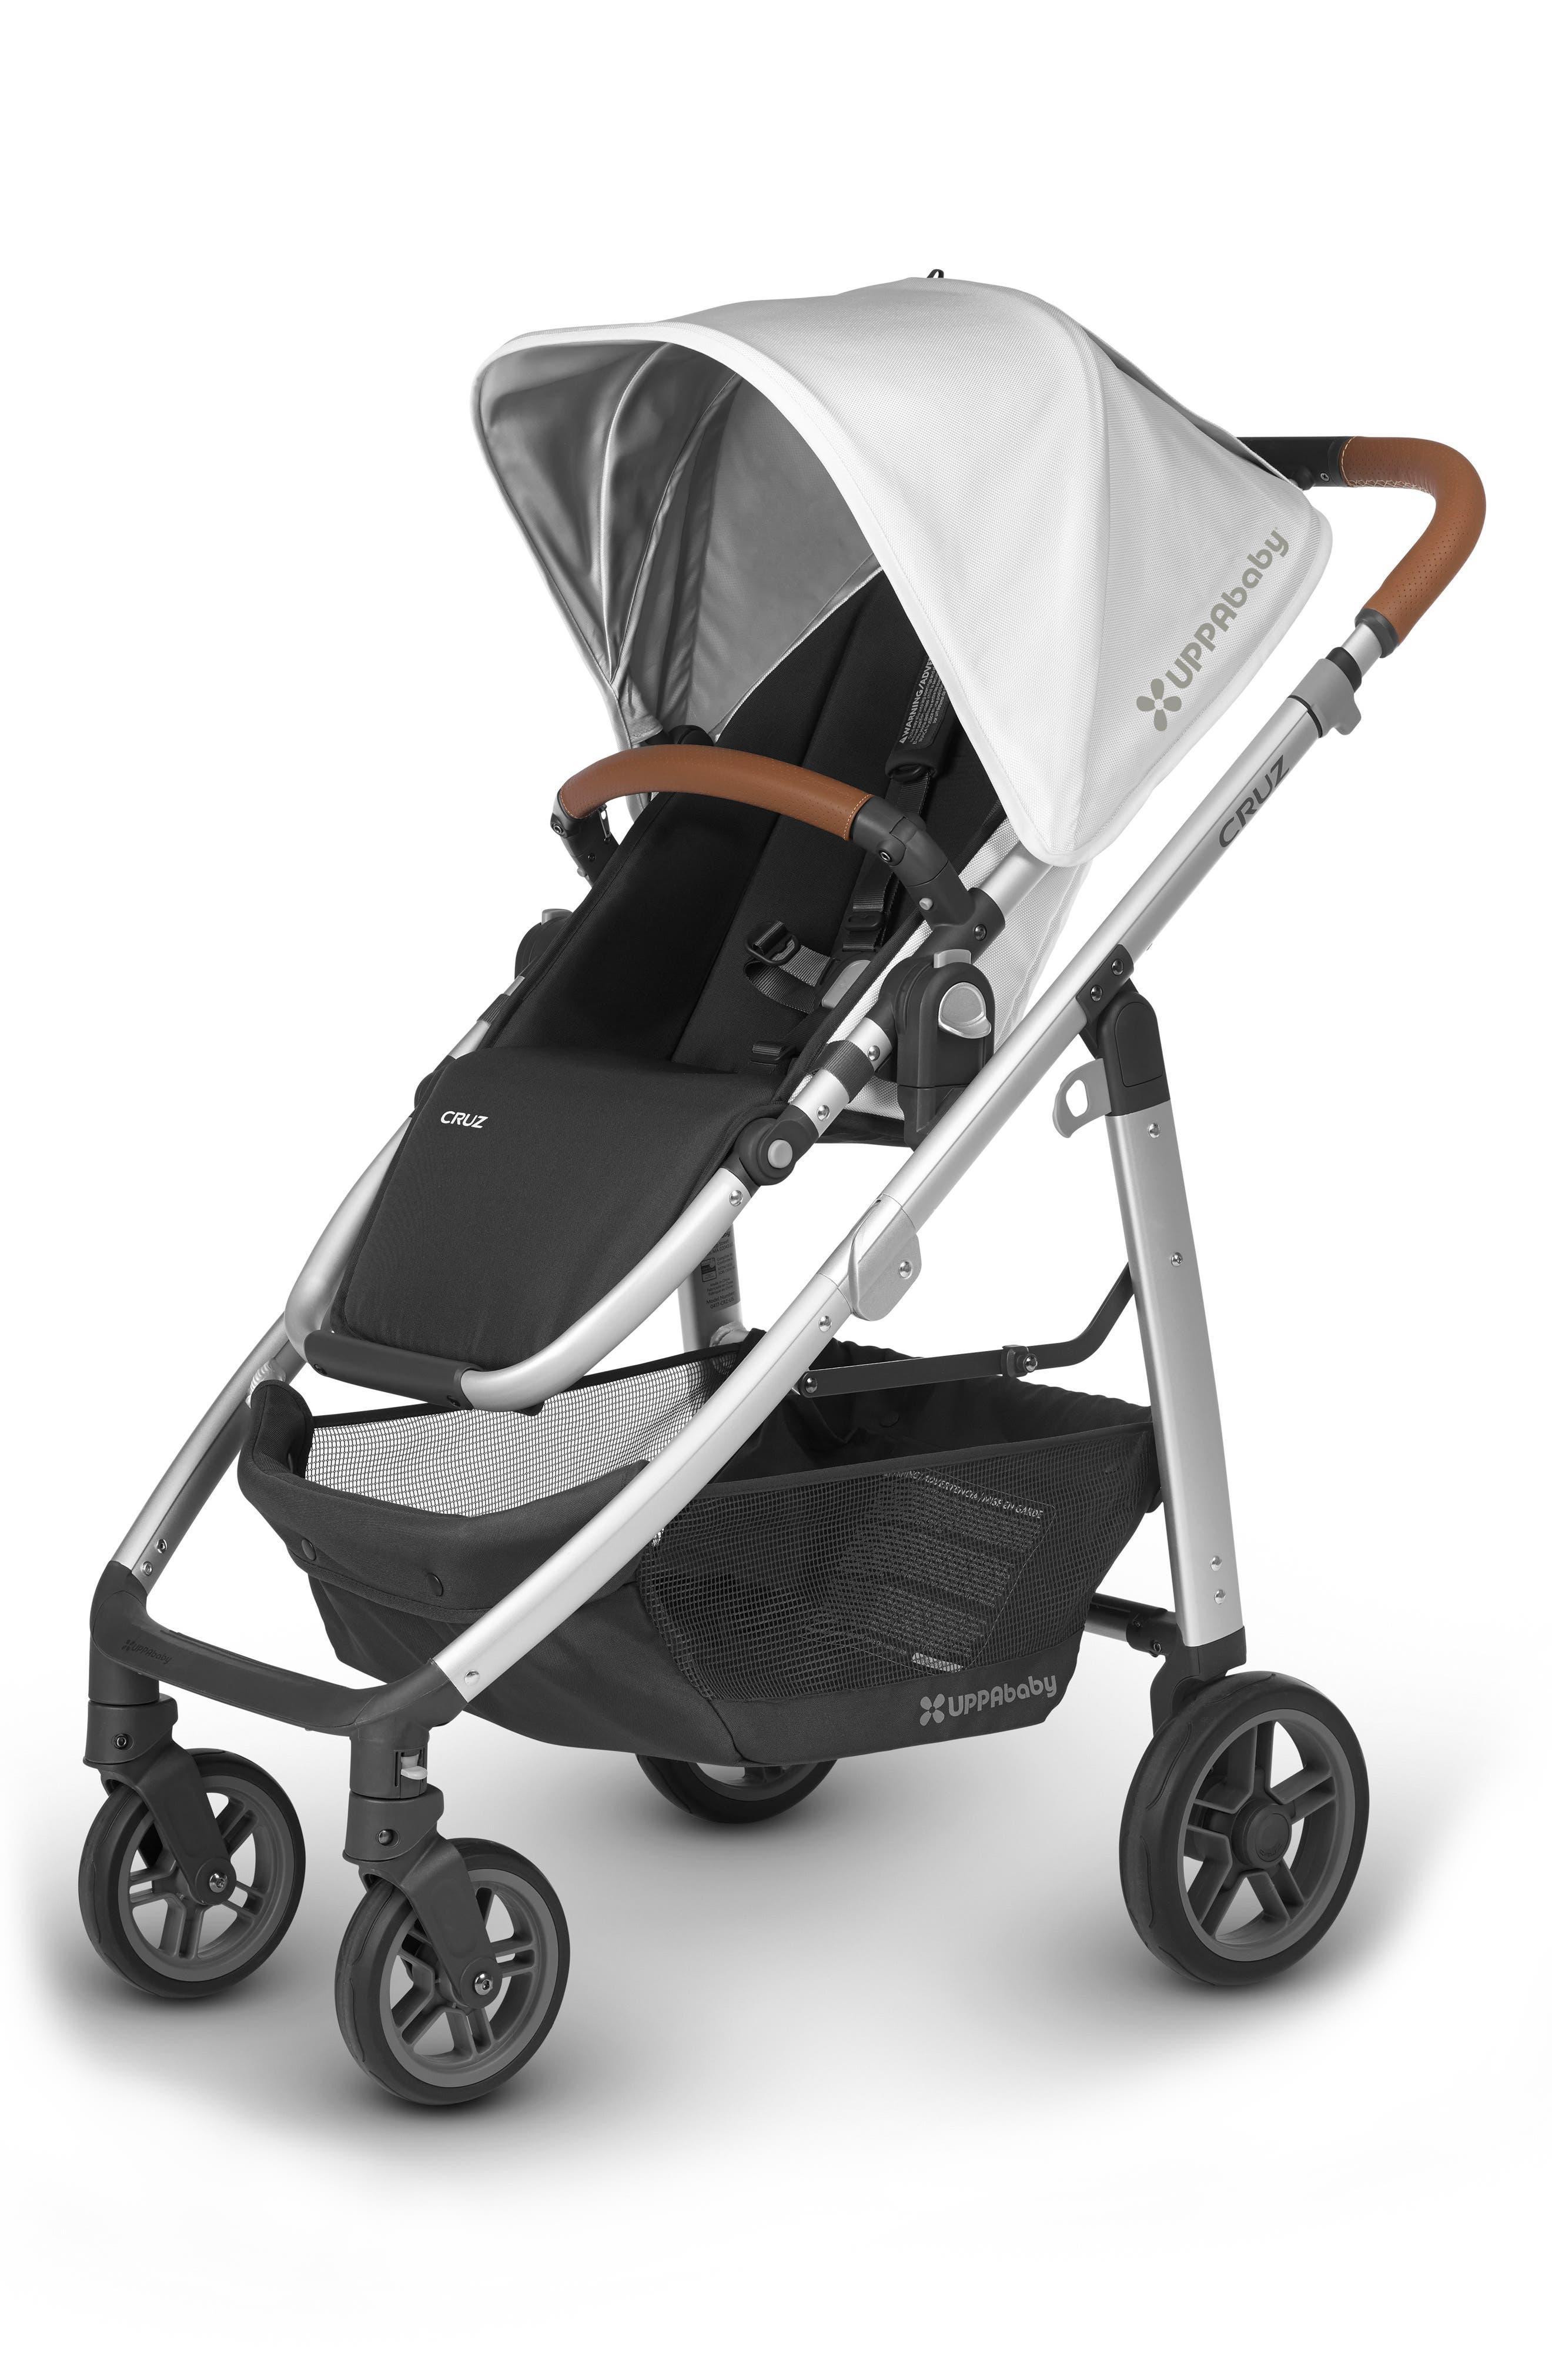 2017 VISTA Aluminum Frame Convertible Stroller with Bassinet & Toddler Seat,                         Main,                         color, White/ Silver